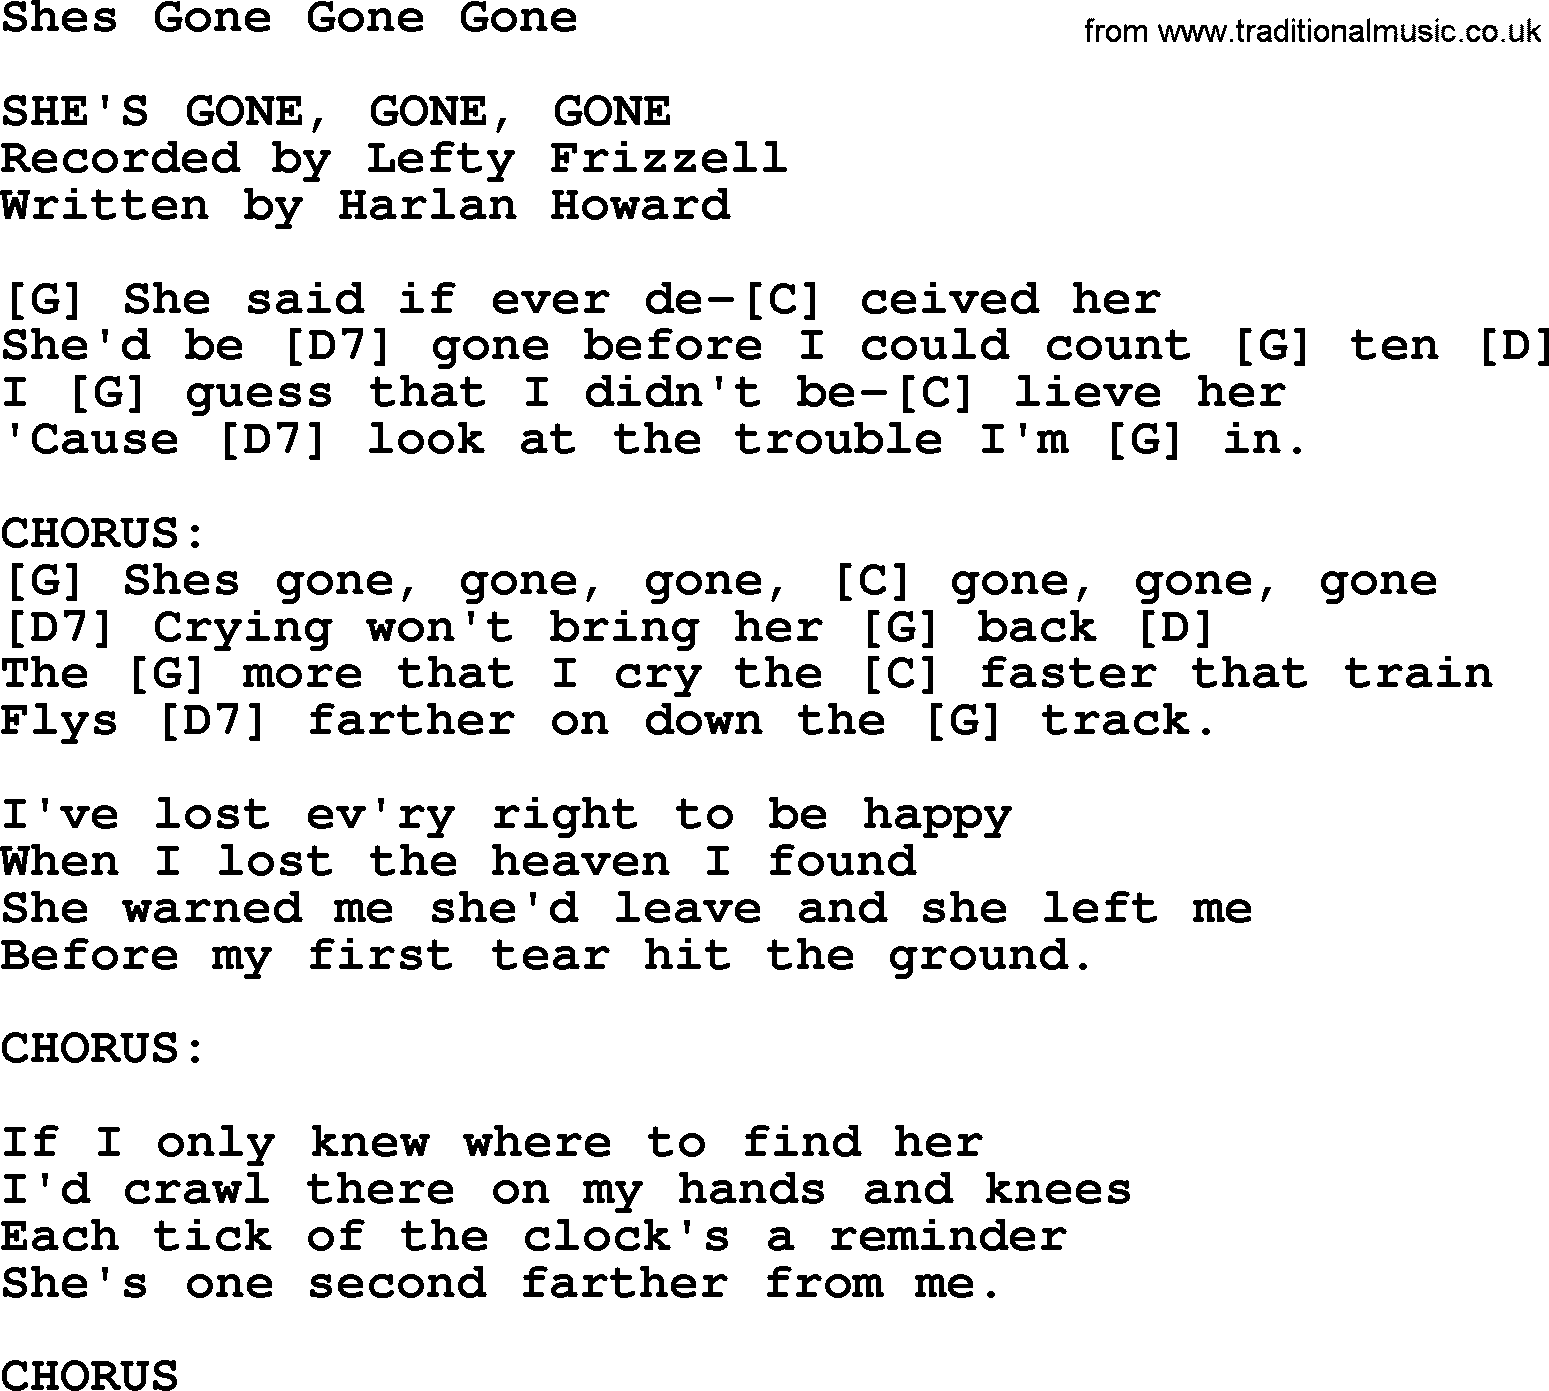 Shes Gone Gone Gone - Bluegrass lyrics with chords